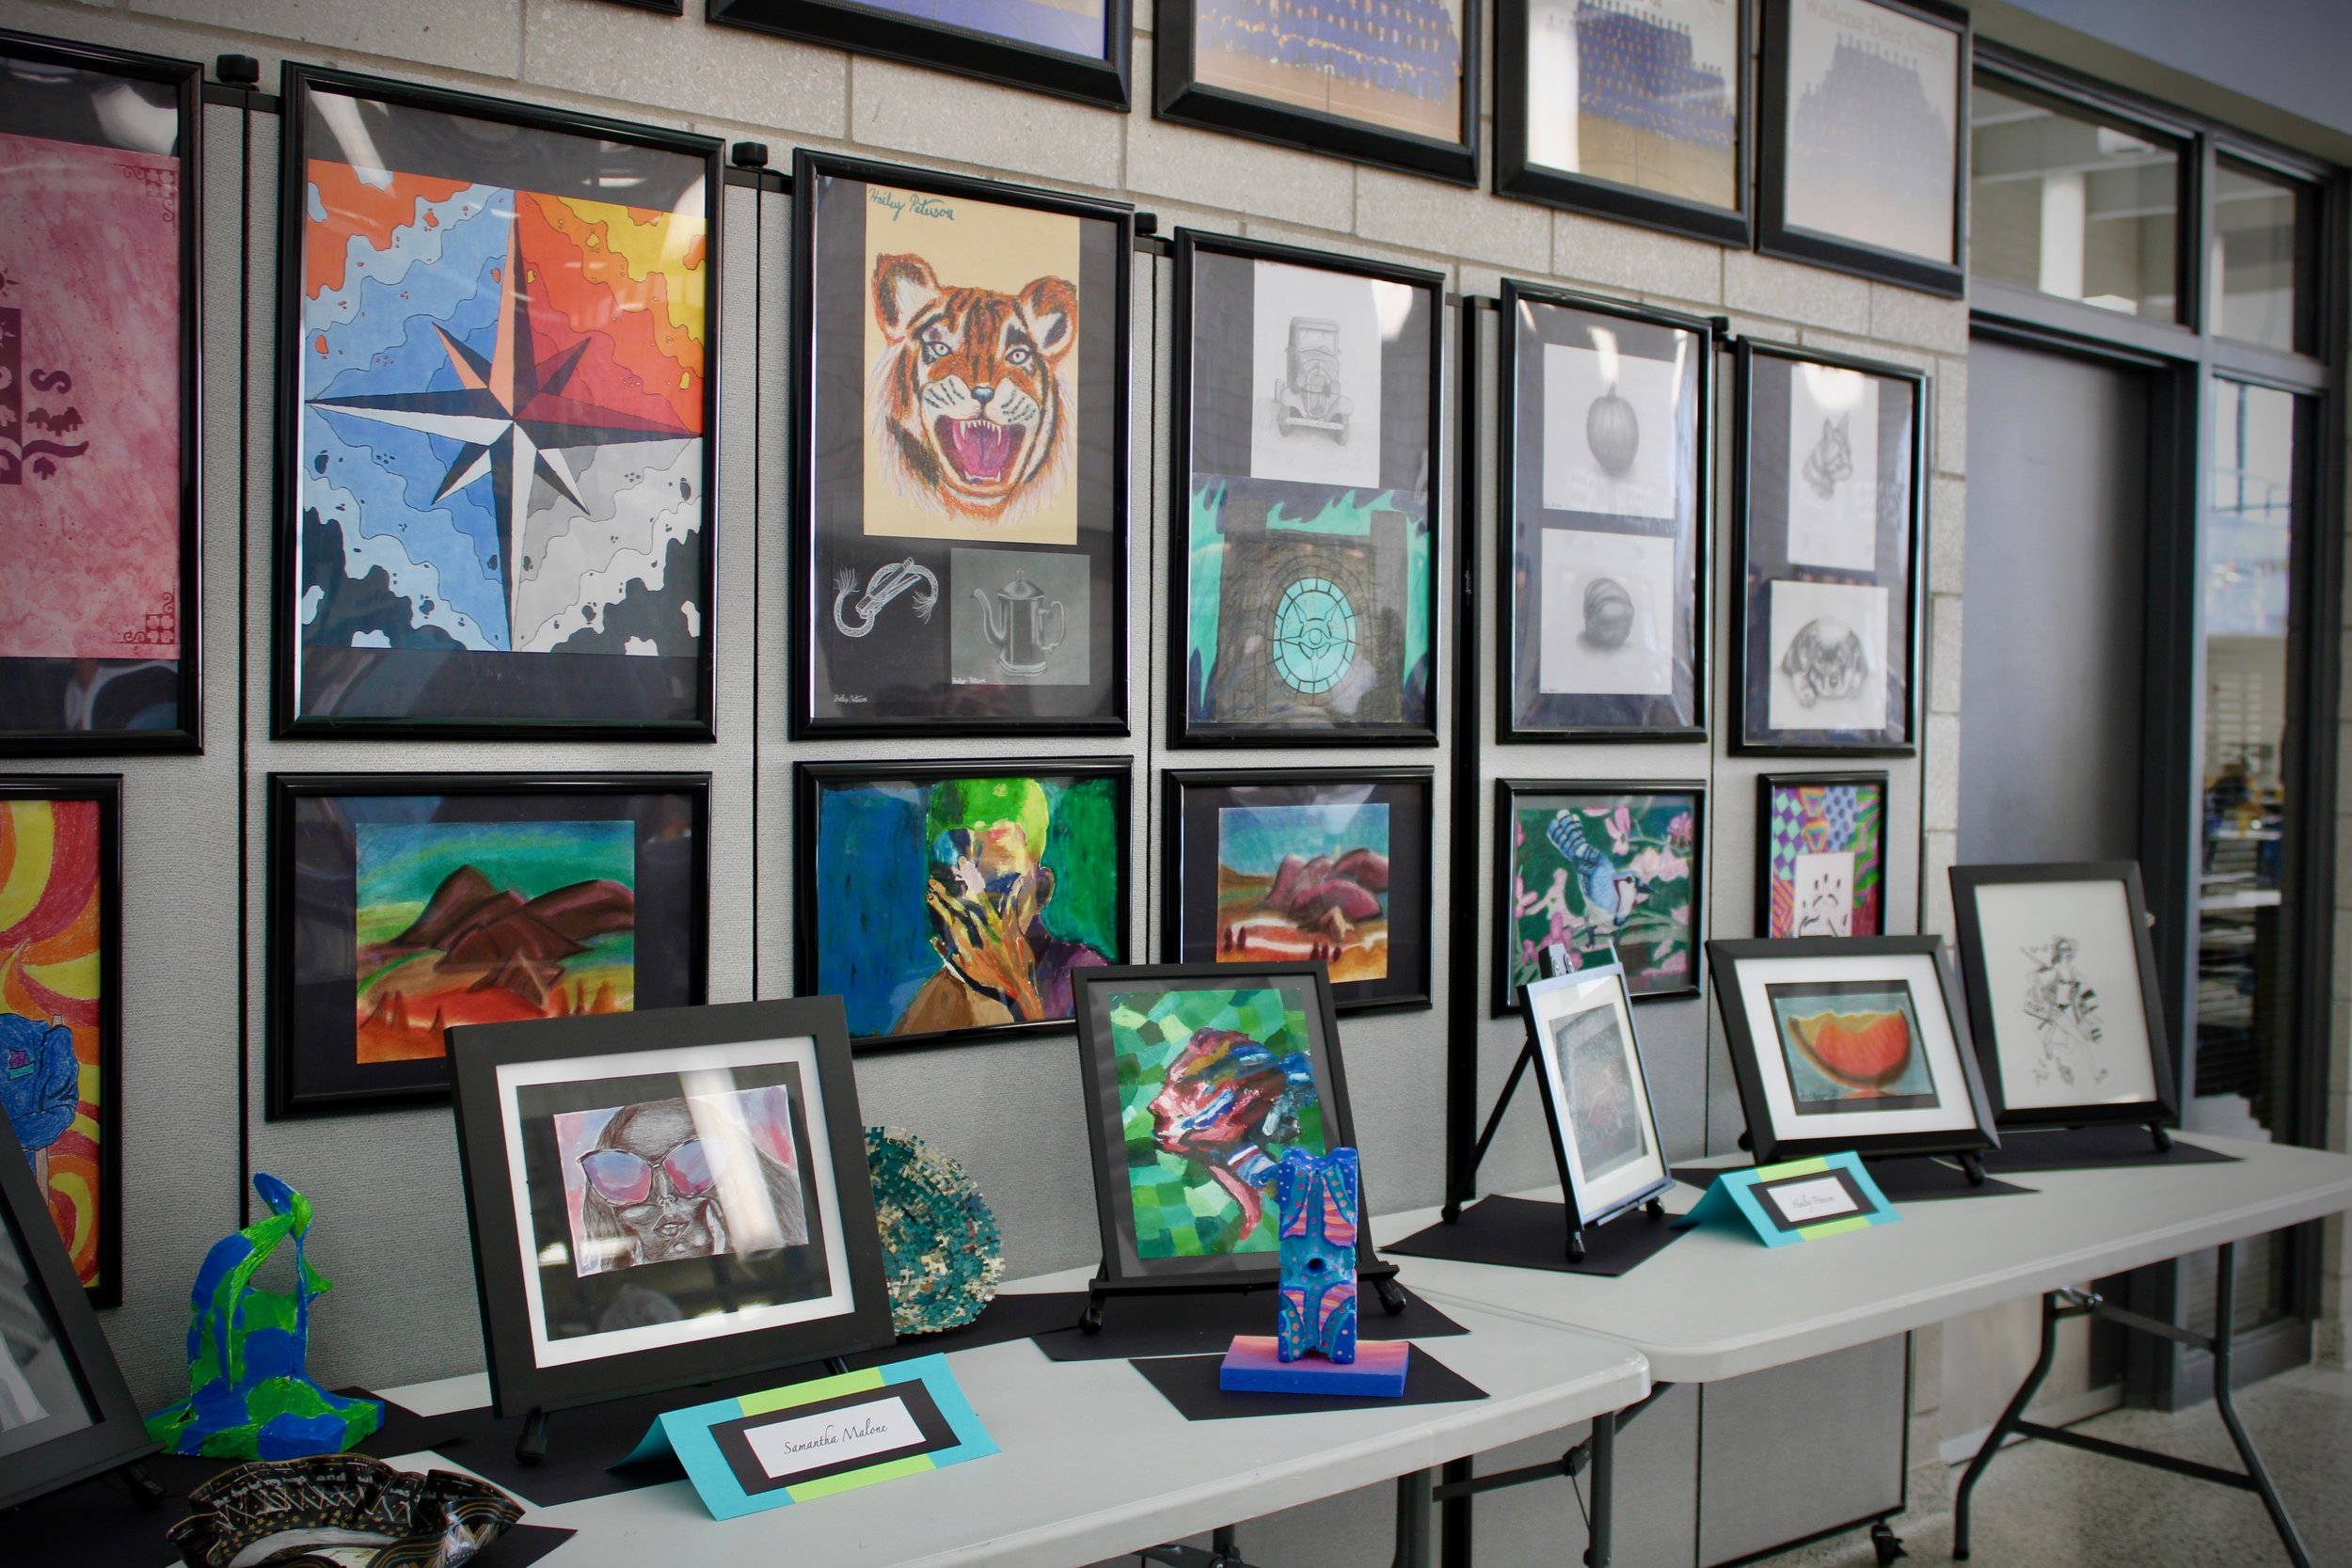 At the Wadena Rotary Fine Arts Banquet, Visual Arts Teacher Laurie Kopischke-Pulju set up an interesting display of students' artwork for parents to enjoy in the Commons at WDC Middle/High School on May 6.